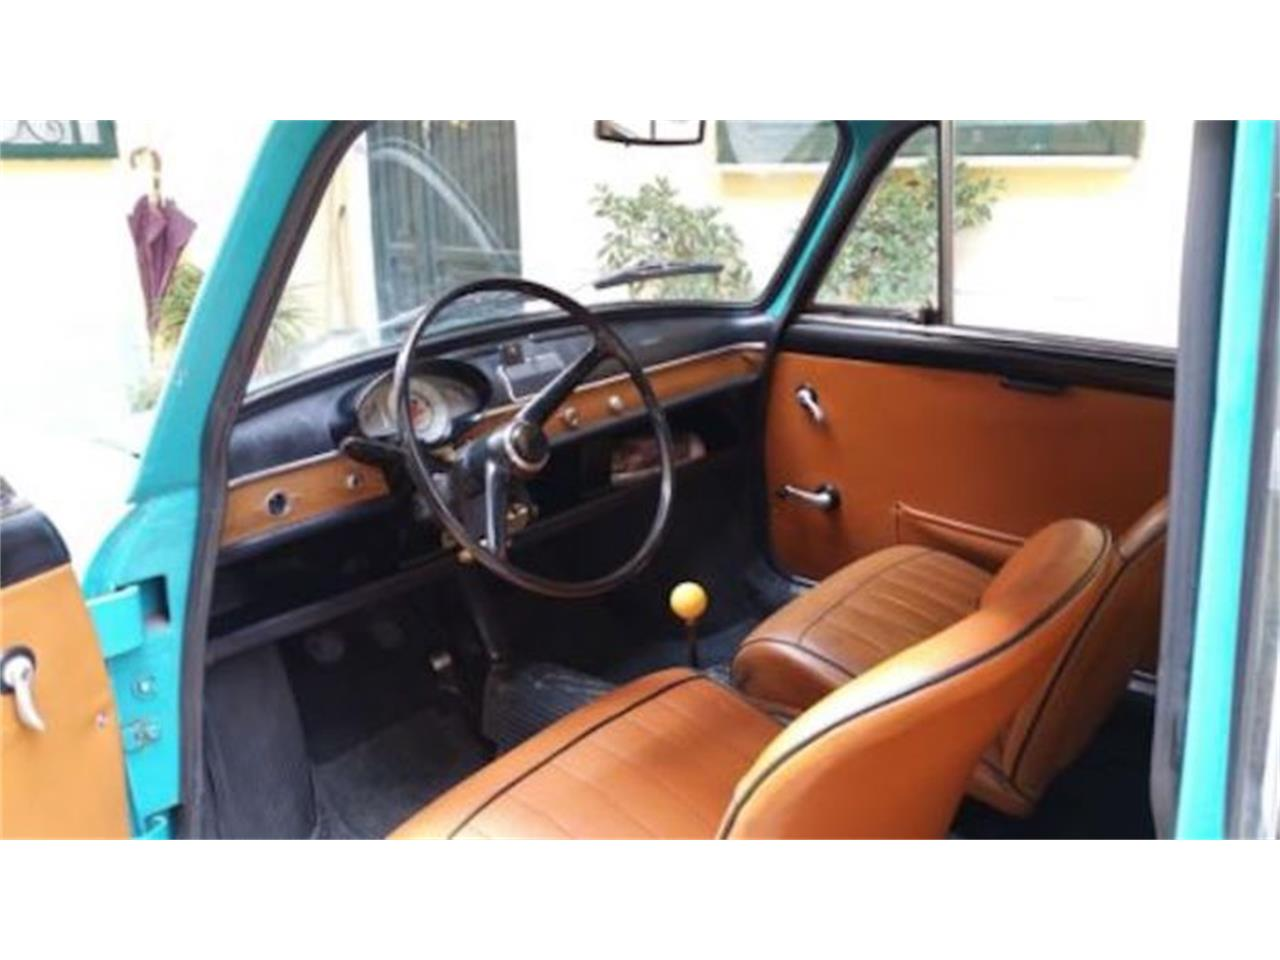 1968 Autobianchi Bianchina Panoramica for sale in Cadillac, MI – photo 3